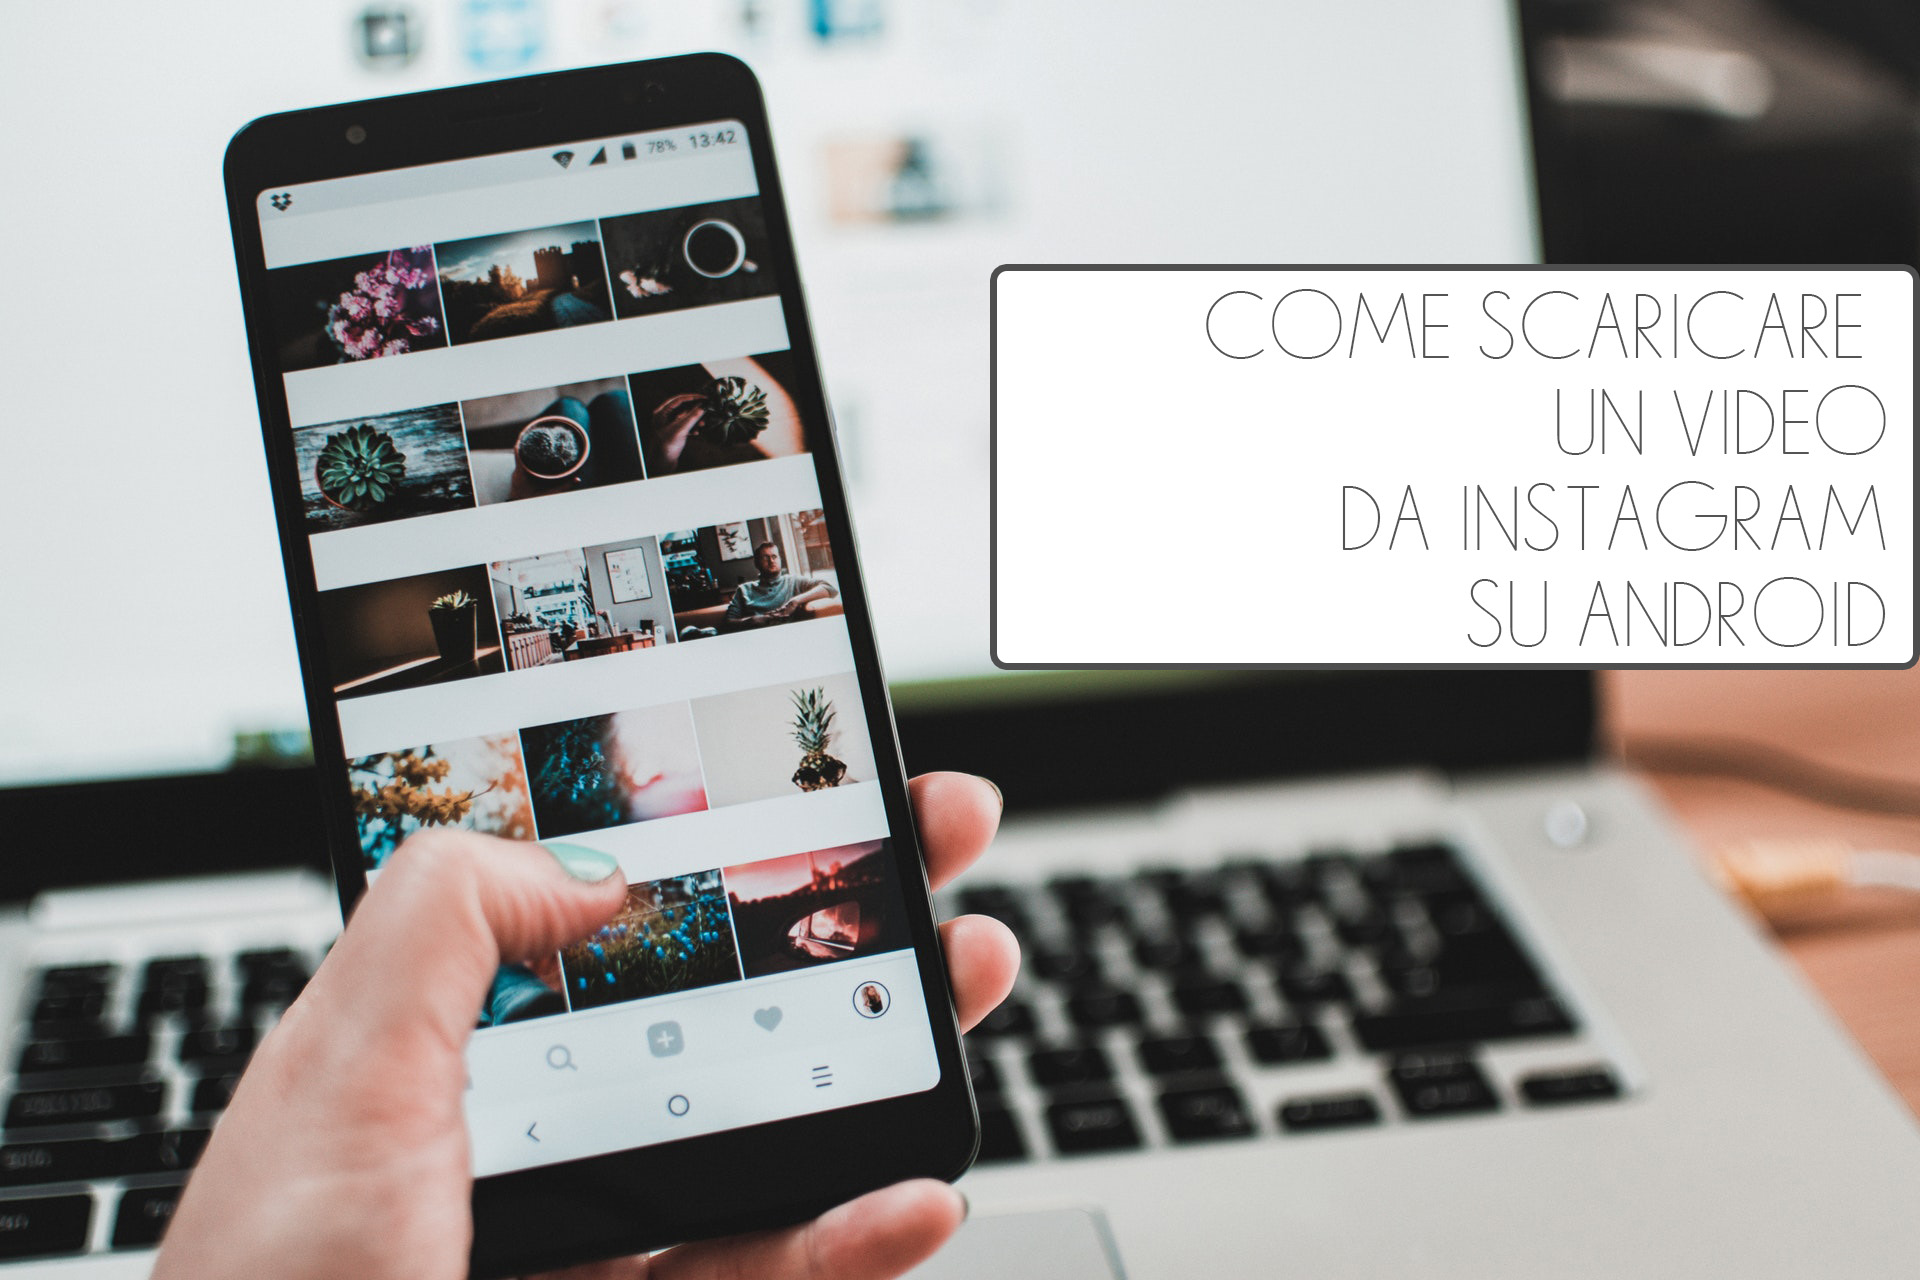 Come scaricare un video da Instagram su Android